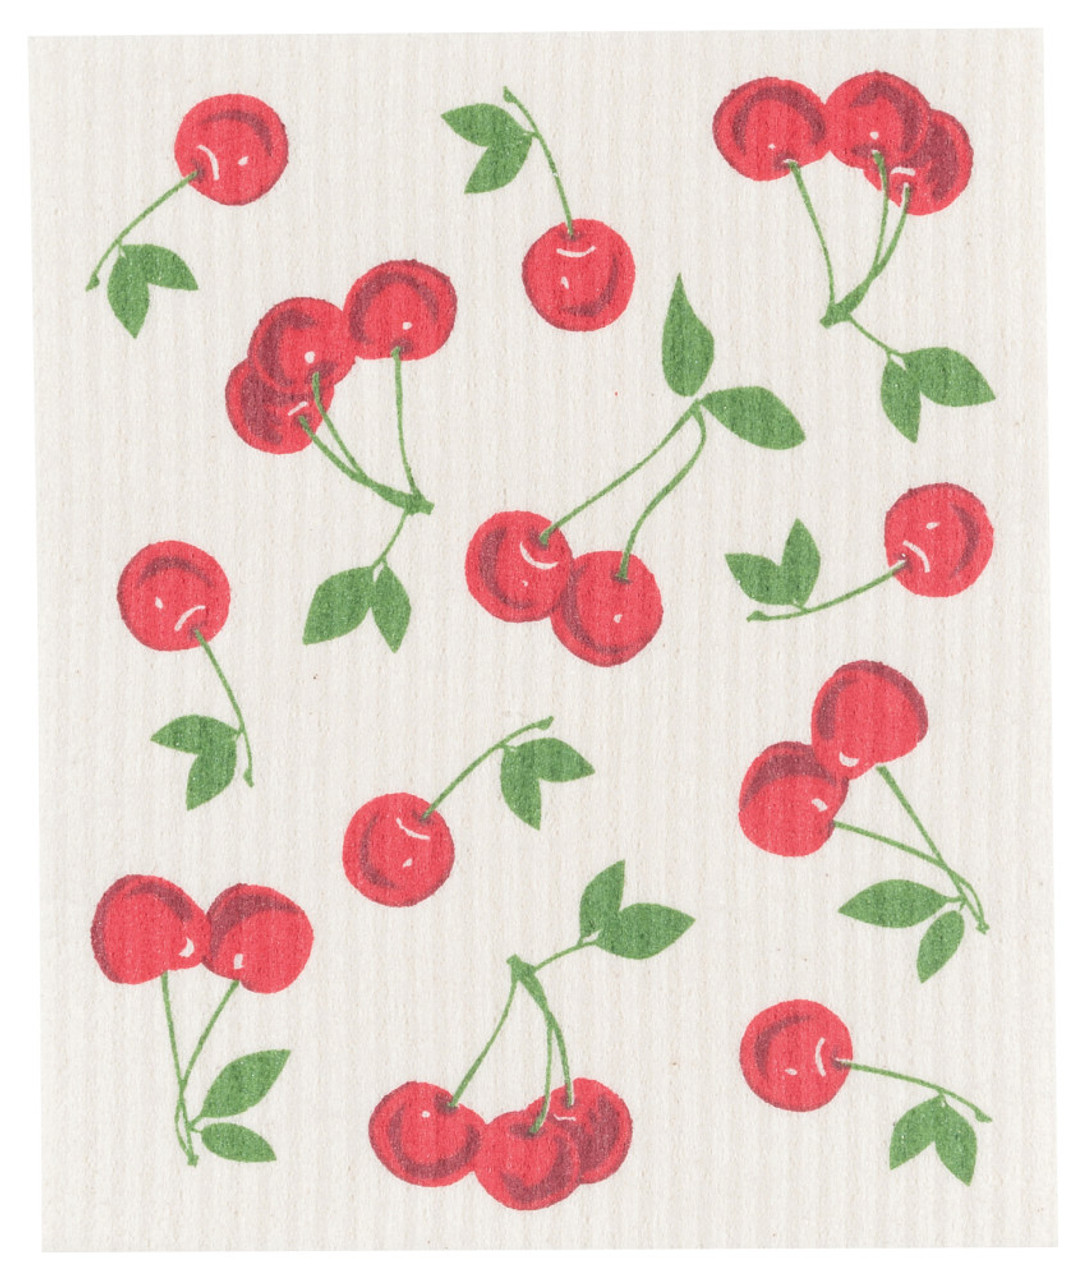 SWEDISH DISH CLOTH - CHERRIES